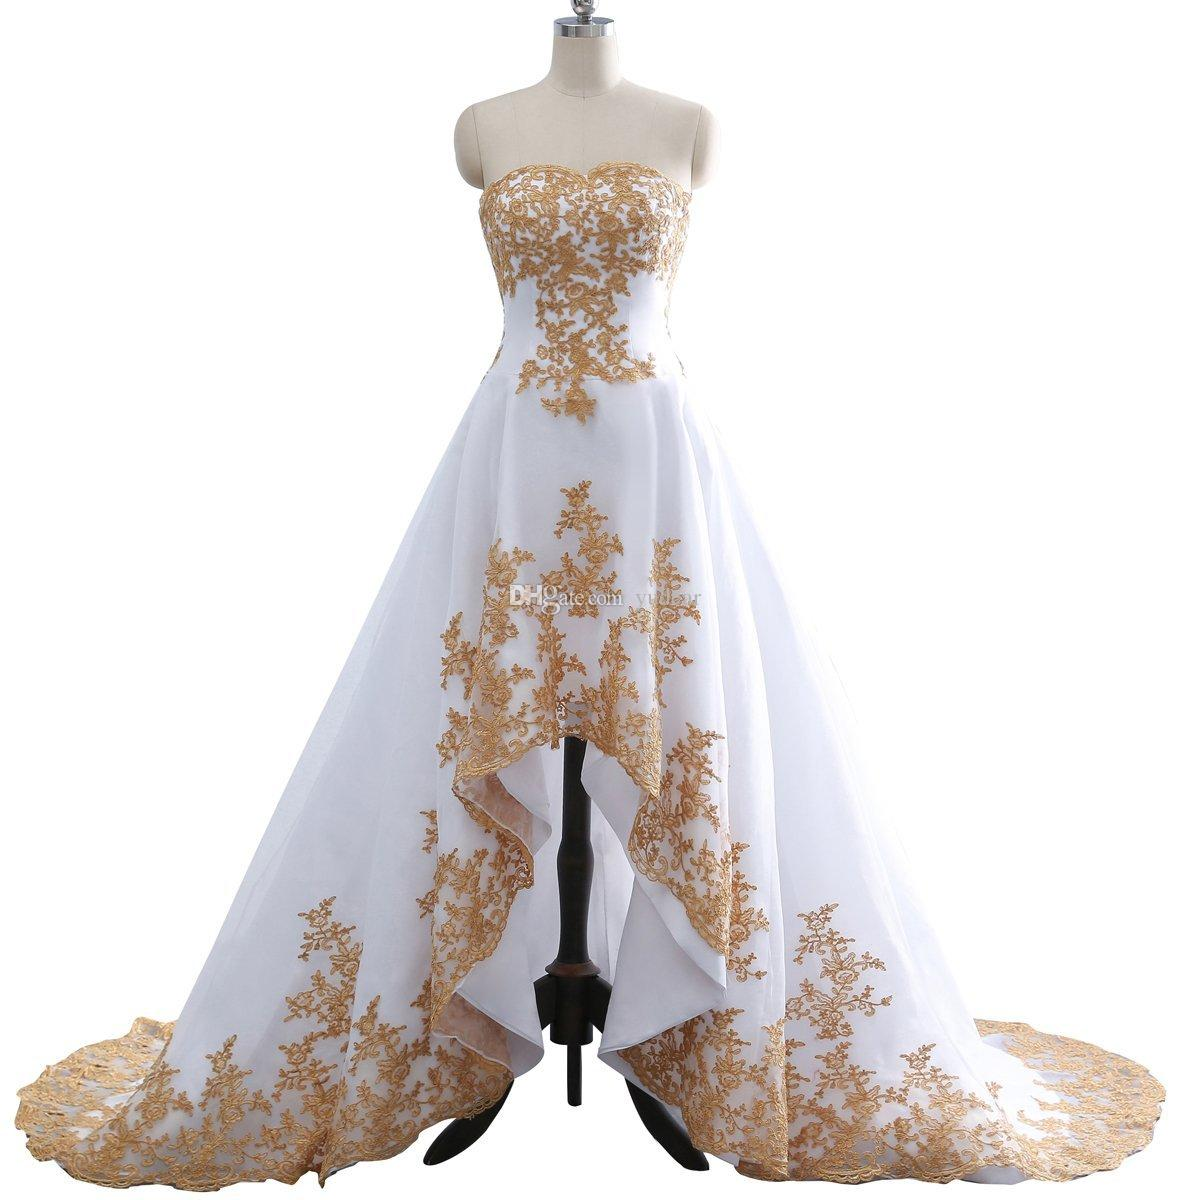 2019 New Sexy Sweetheart A-line Hi-Lo Evening Dresses Flowy Chiffon Celebrity Gowns Colorful Appliques Lace Up Dresses for Banquets